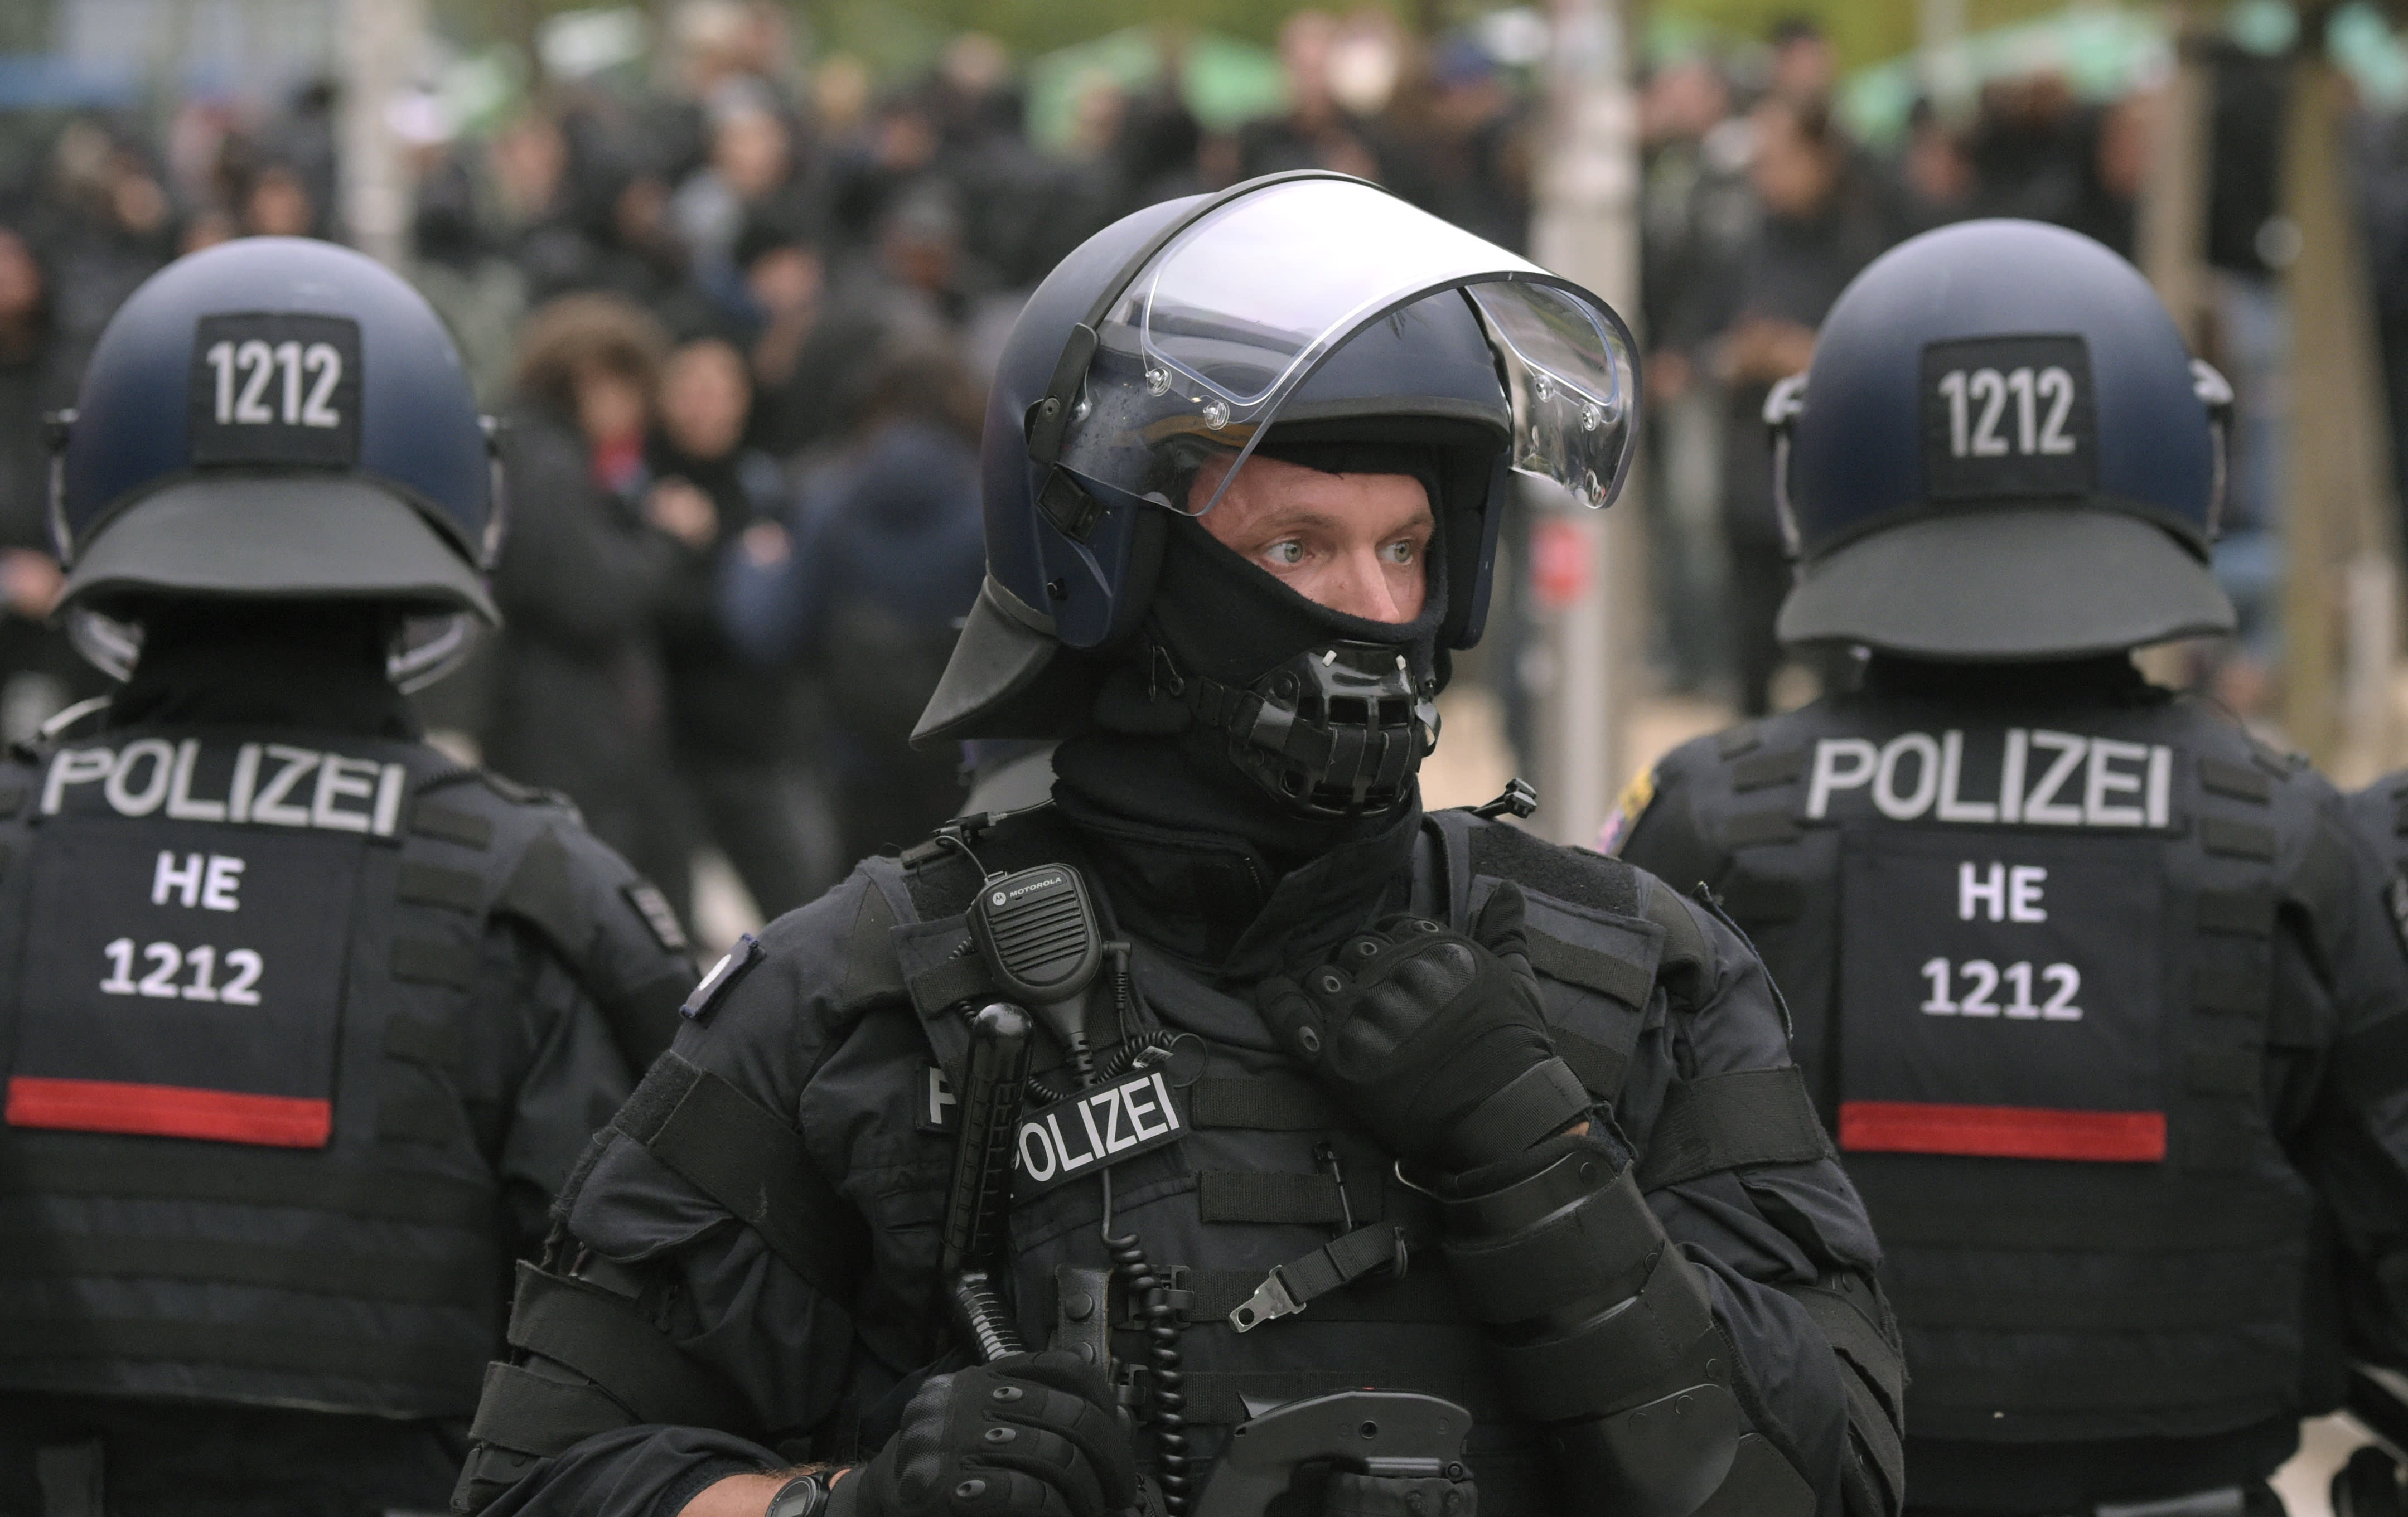 <p>Police separate leftist and nationalist demonstrators in Chemnitz, eastern Germany, Saturday, Sept. 1, 2018, after several nationalist groups called for marches protesting the killing of a German man last week, allegedly by migrants from Syria and Iraq. (Photo: Jens Meyer/AP) </p>